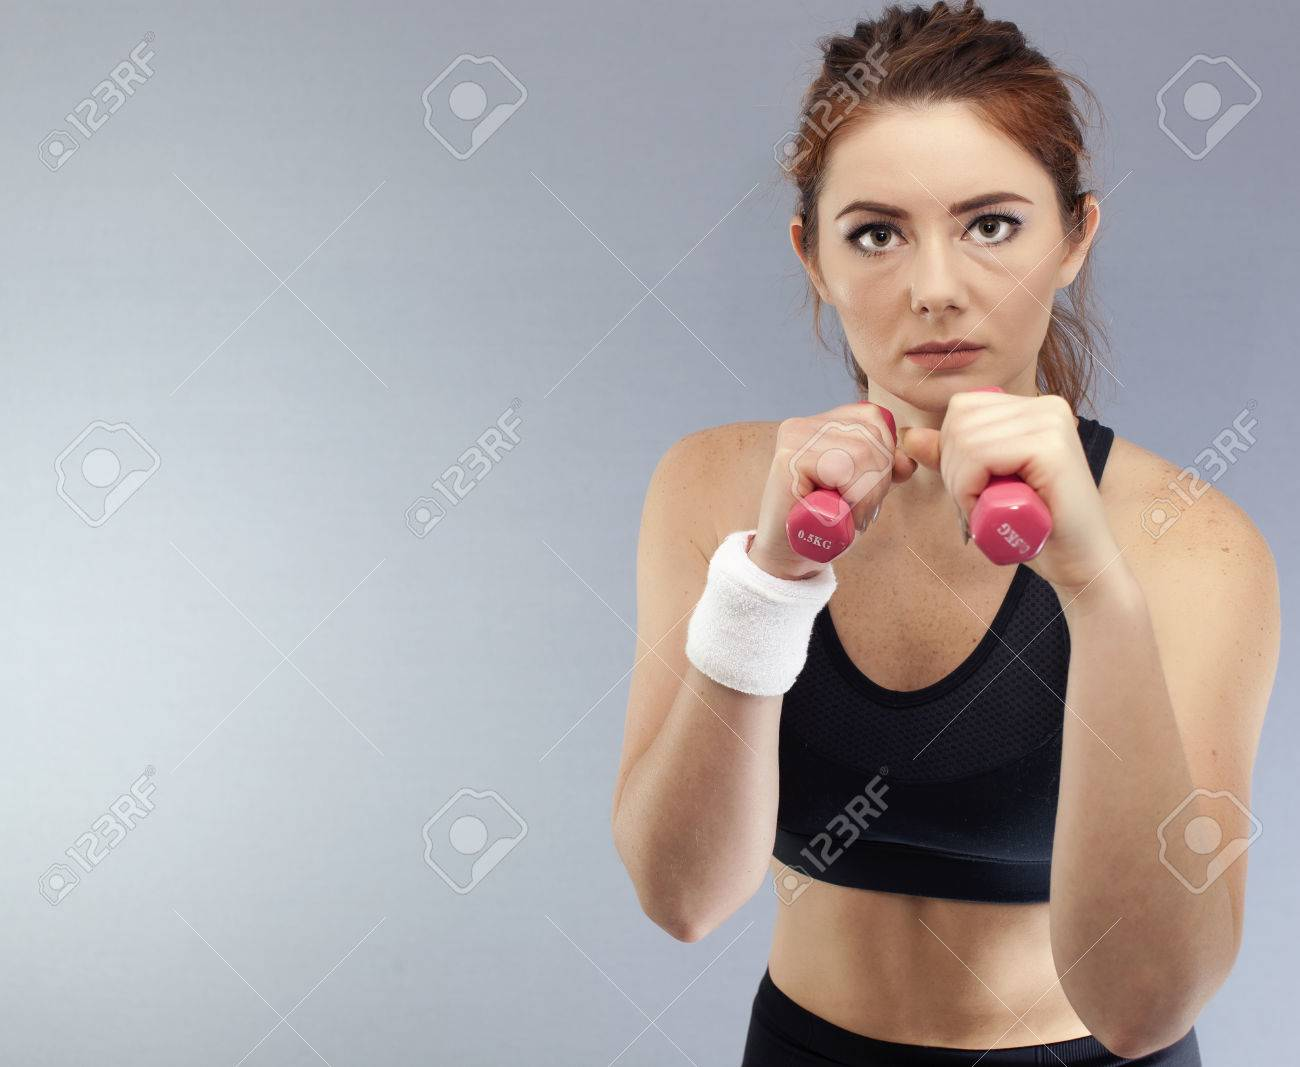 Sport serios girl with red dumbbells boxer pose looks direct. Portrait - 75276921